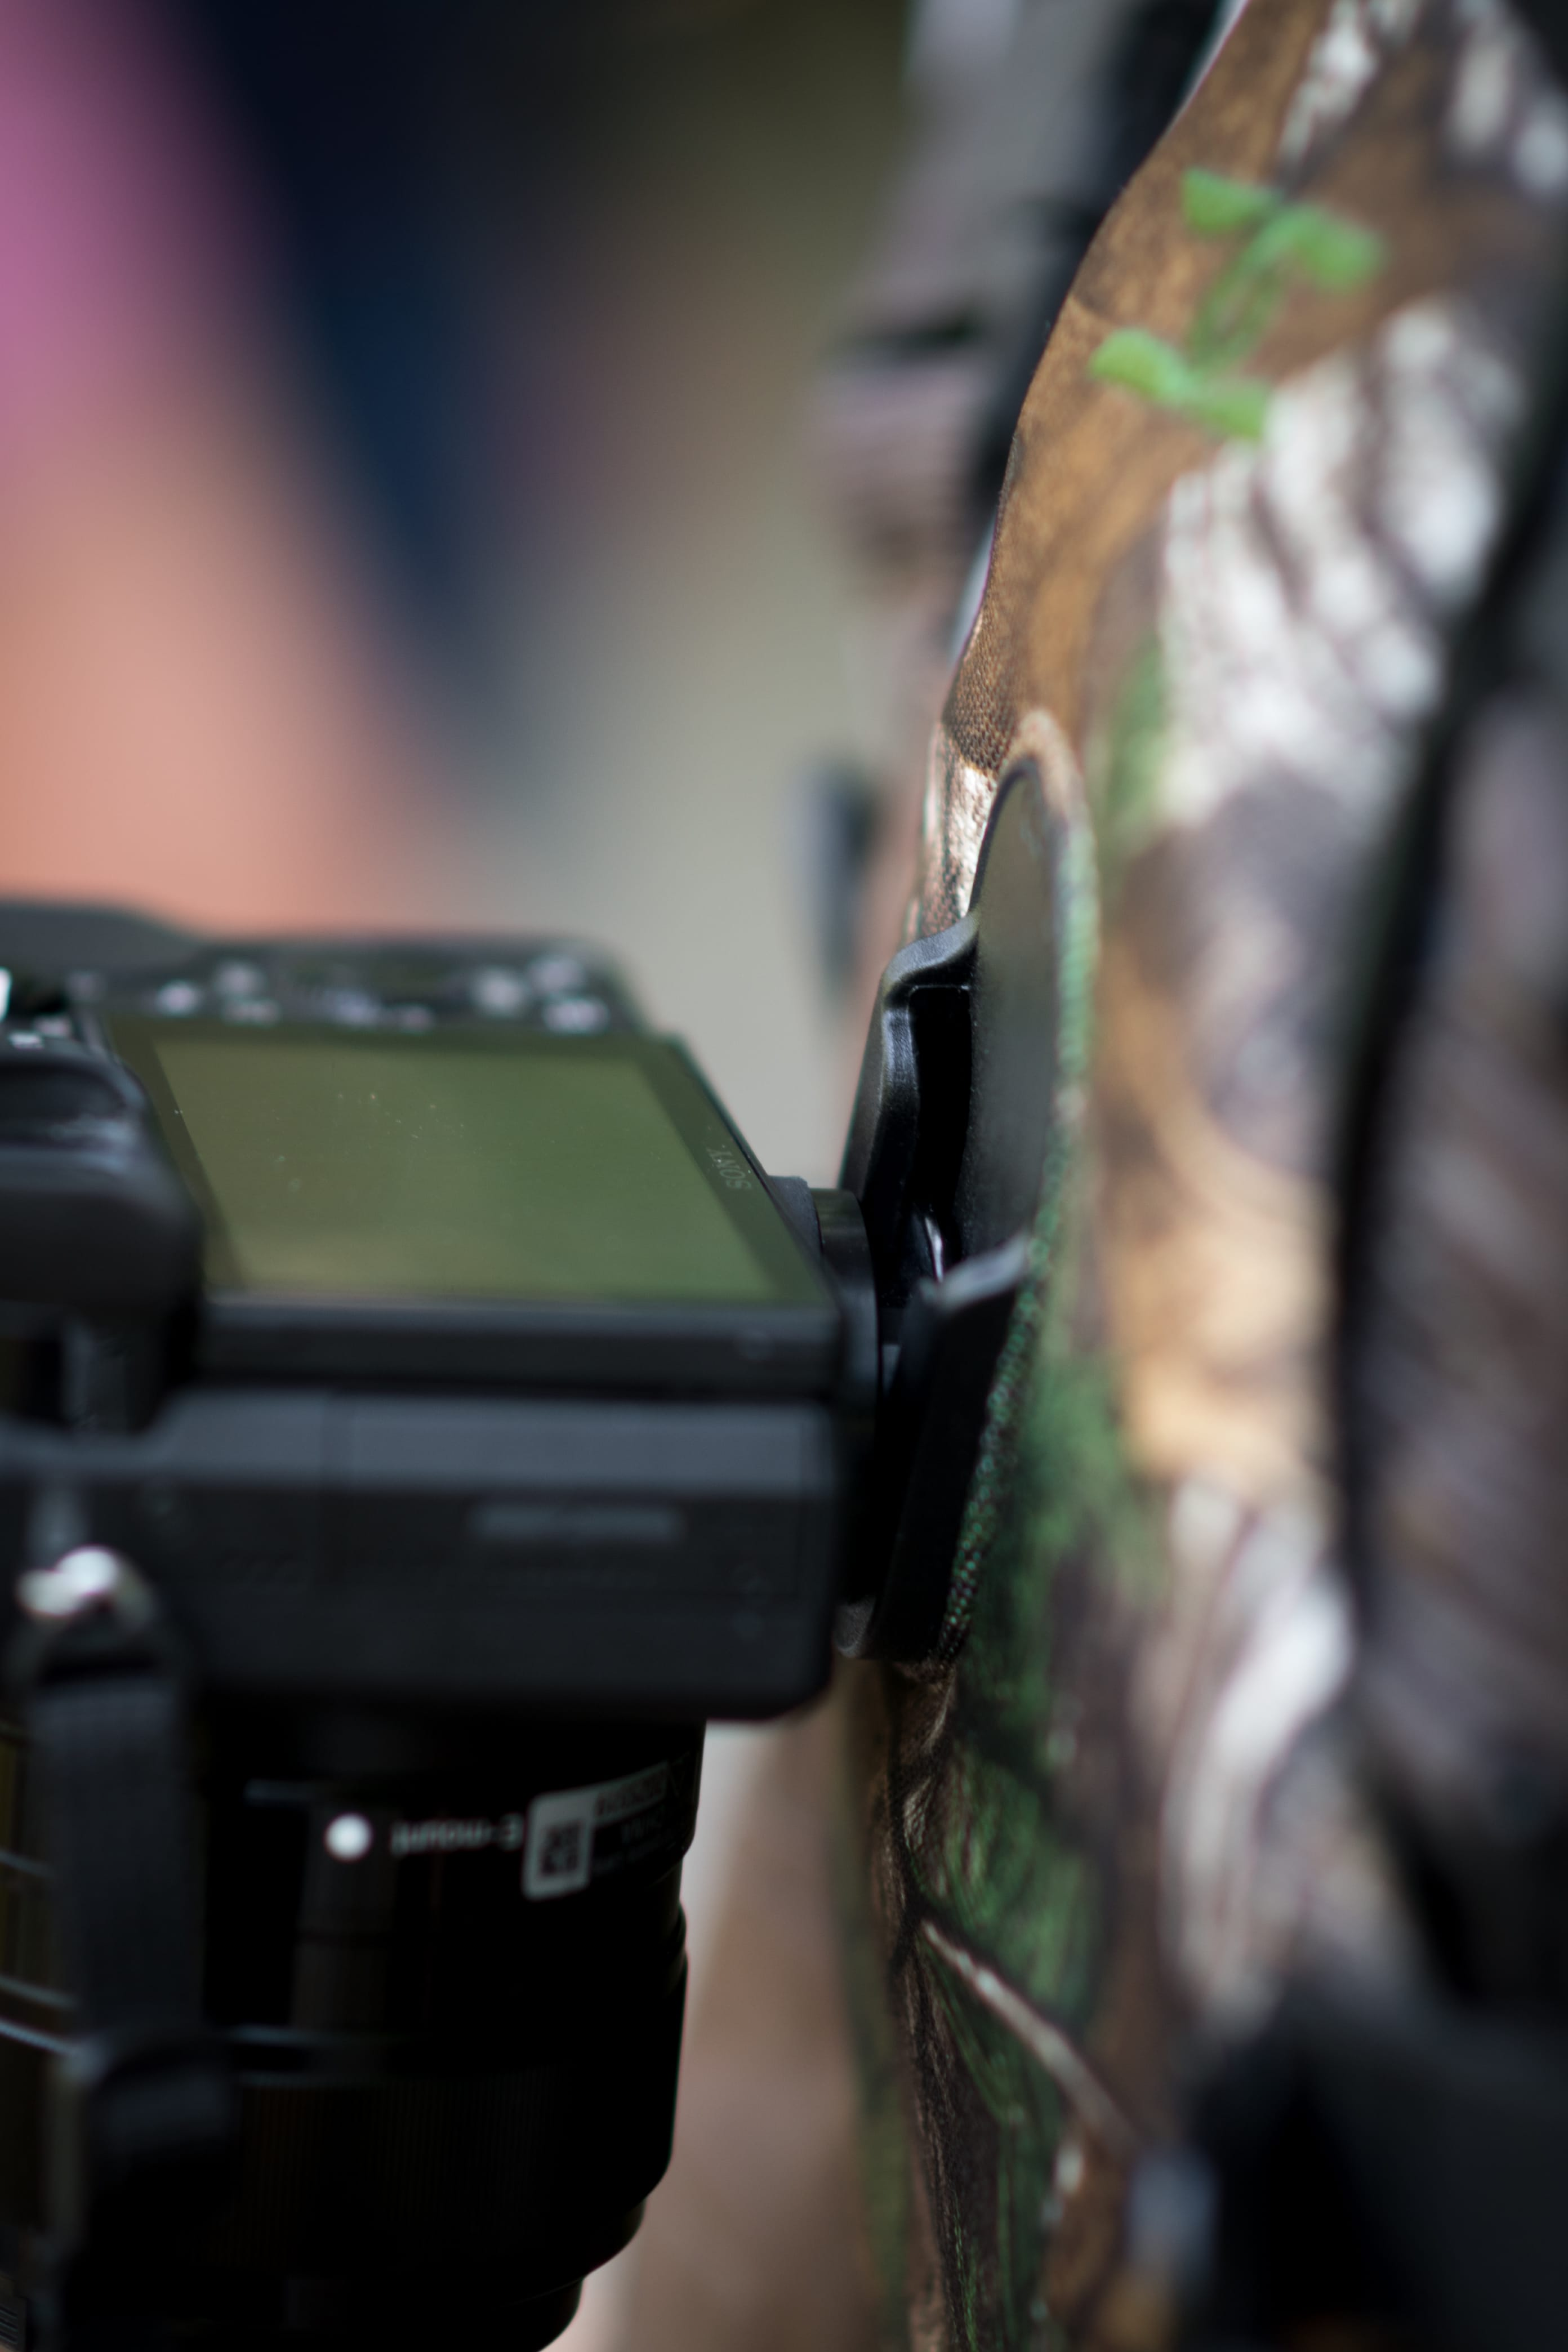 Camera holster system on chest